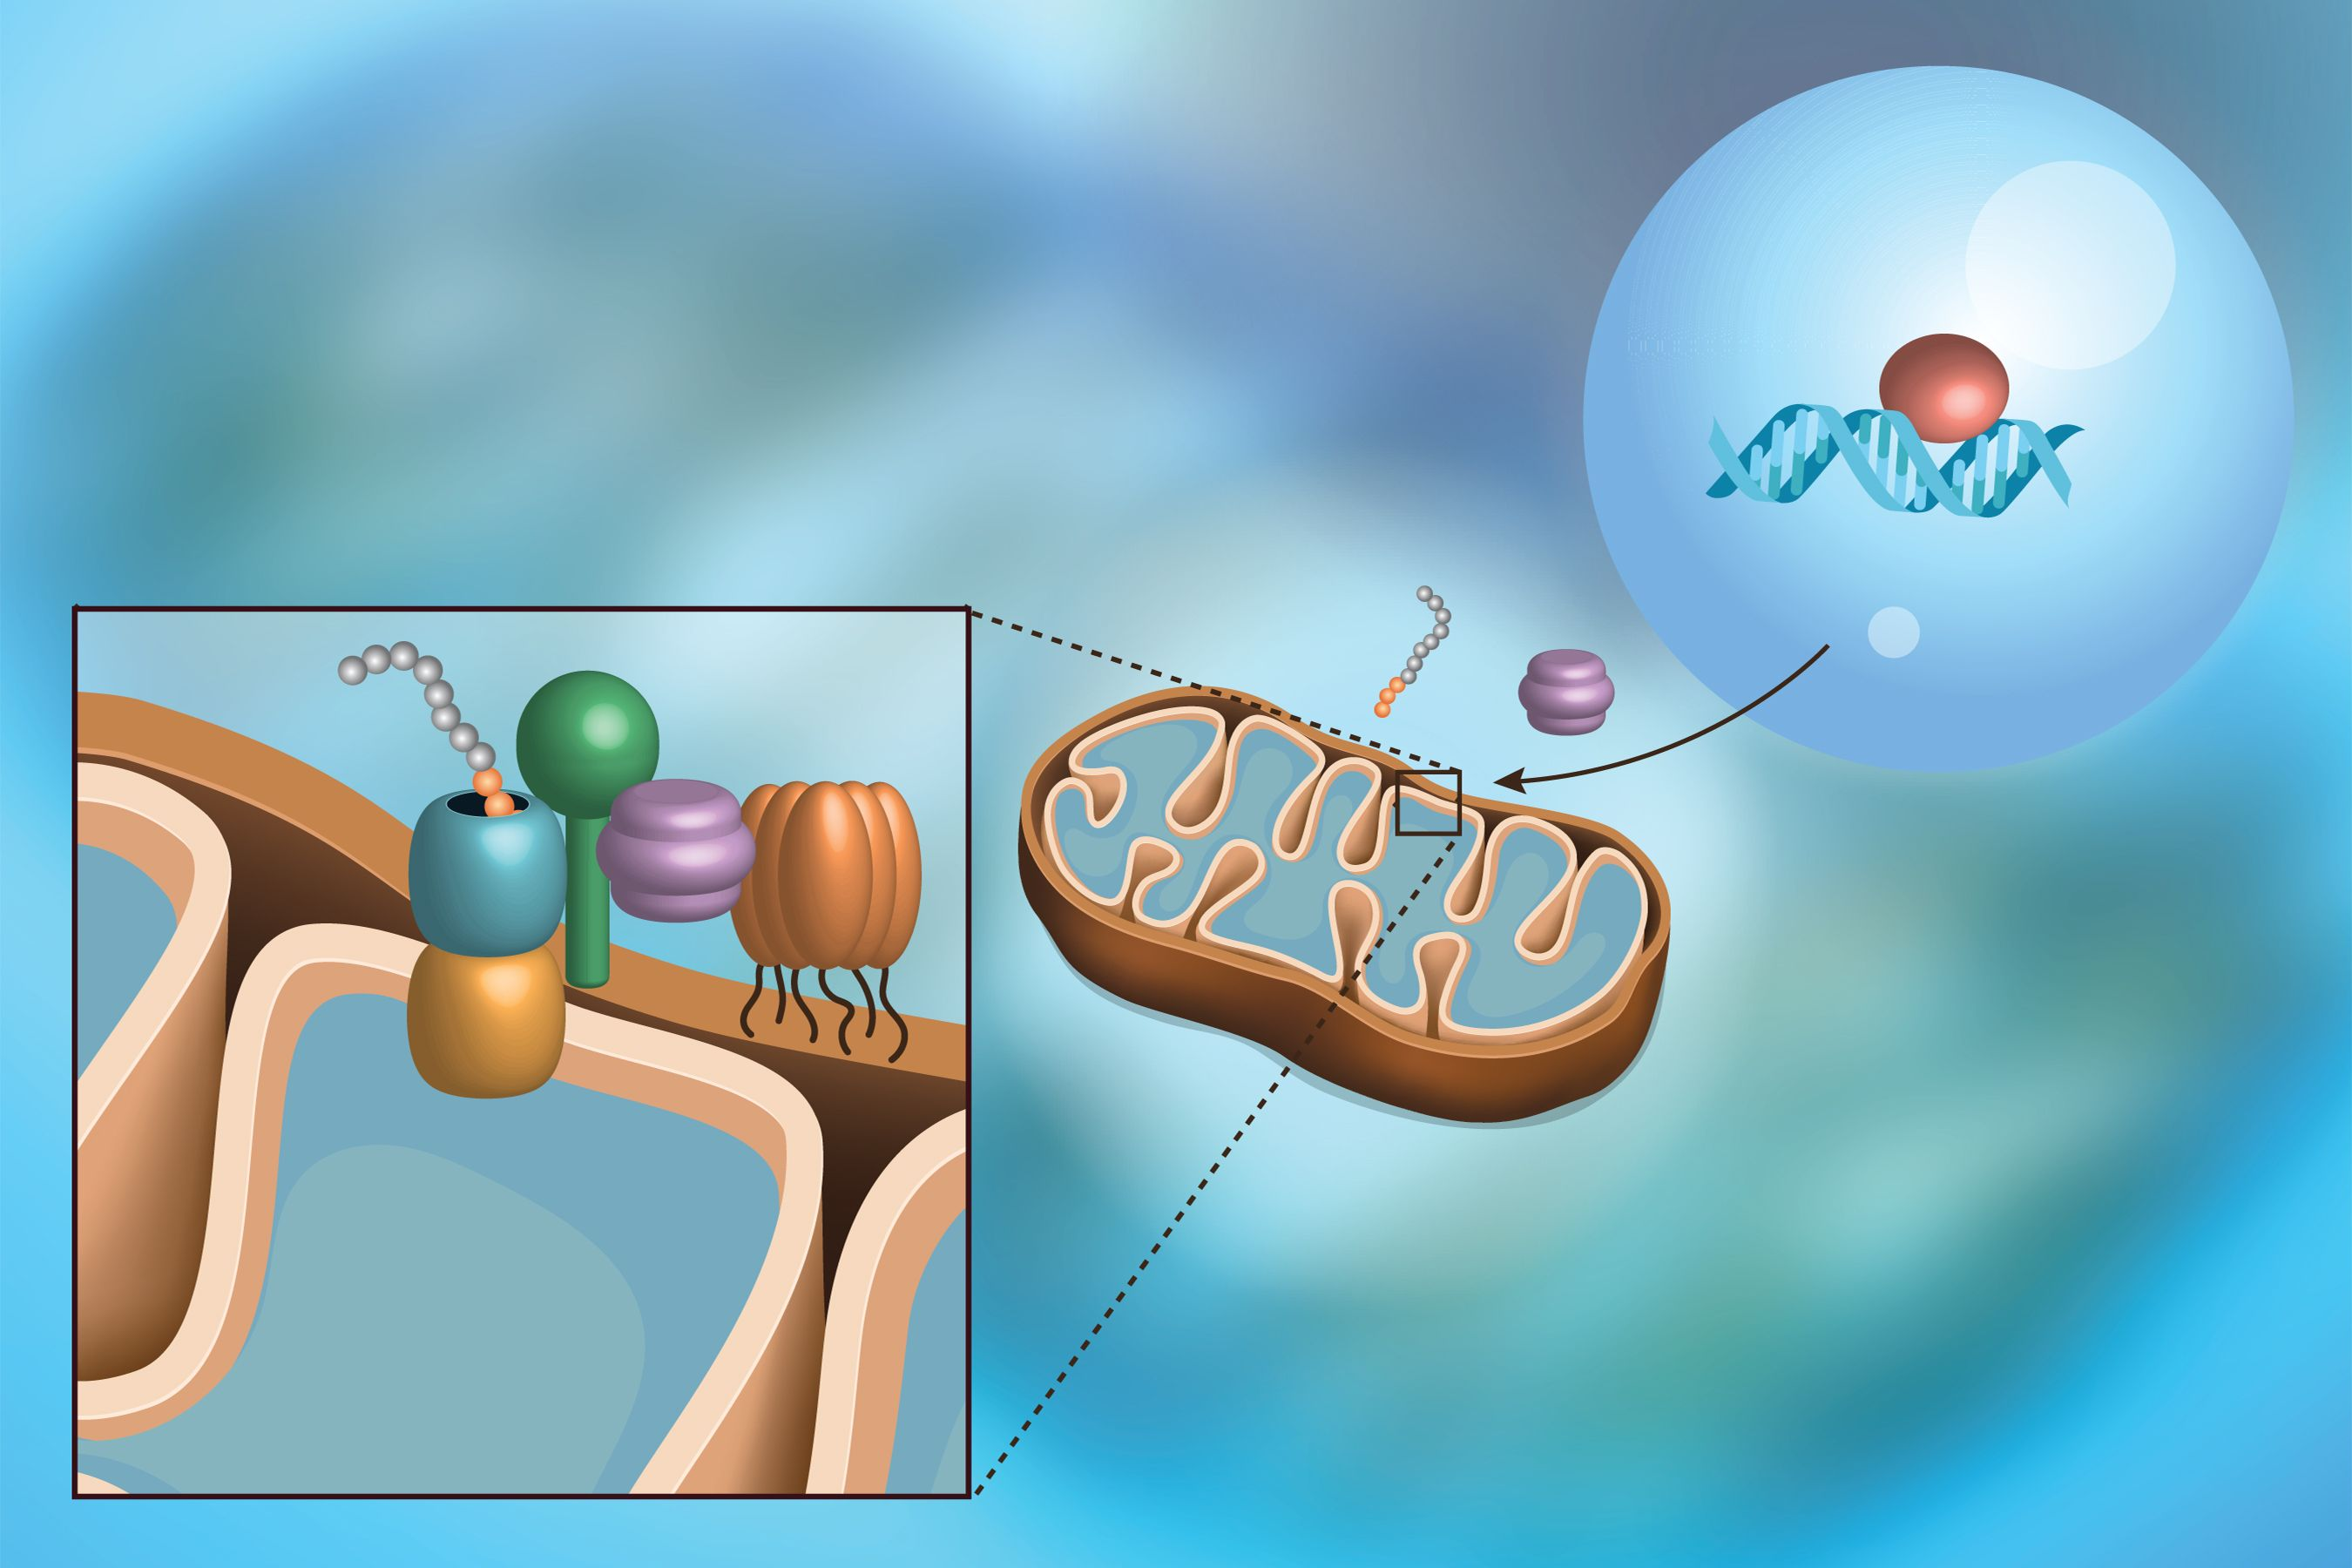 Countering mitochondrial stress